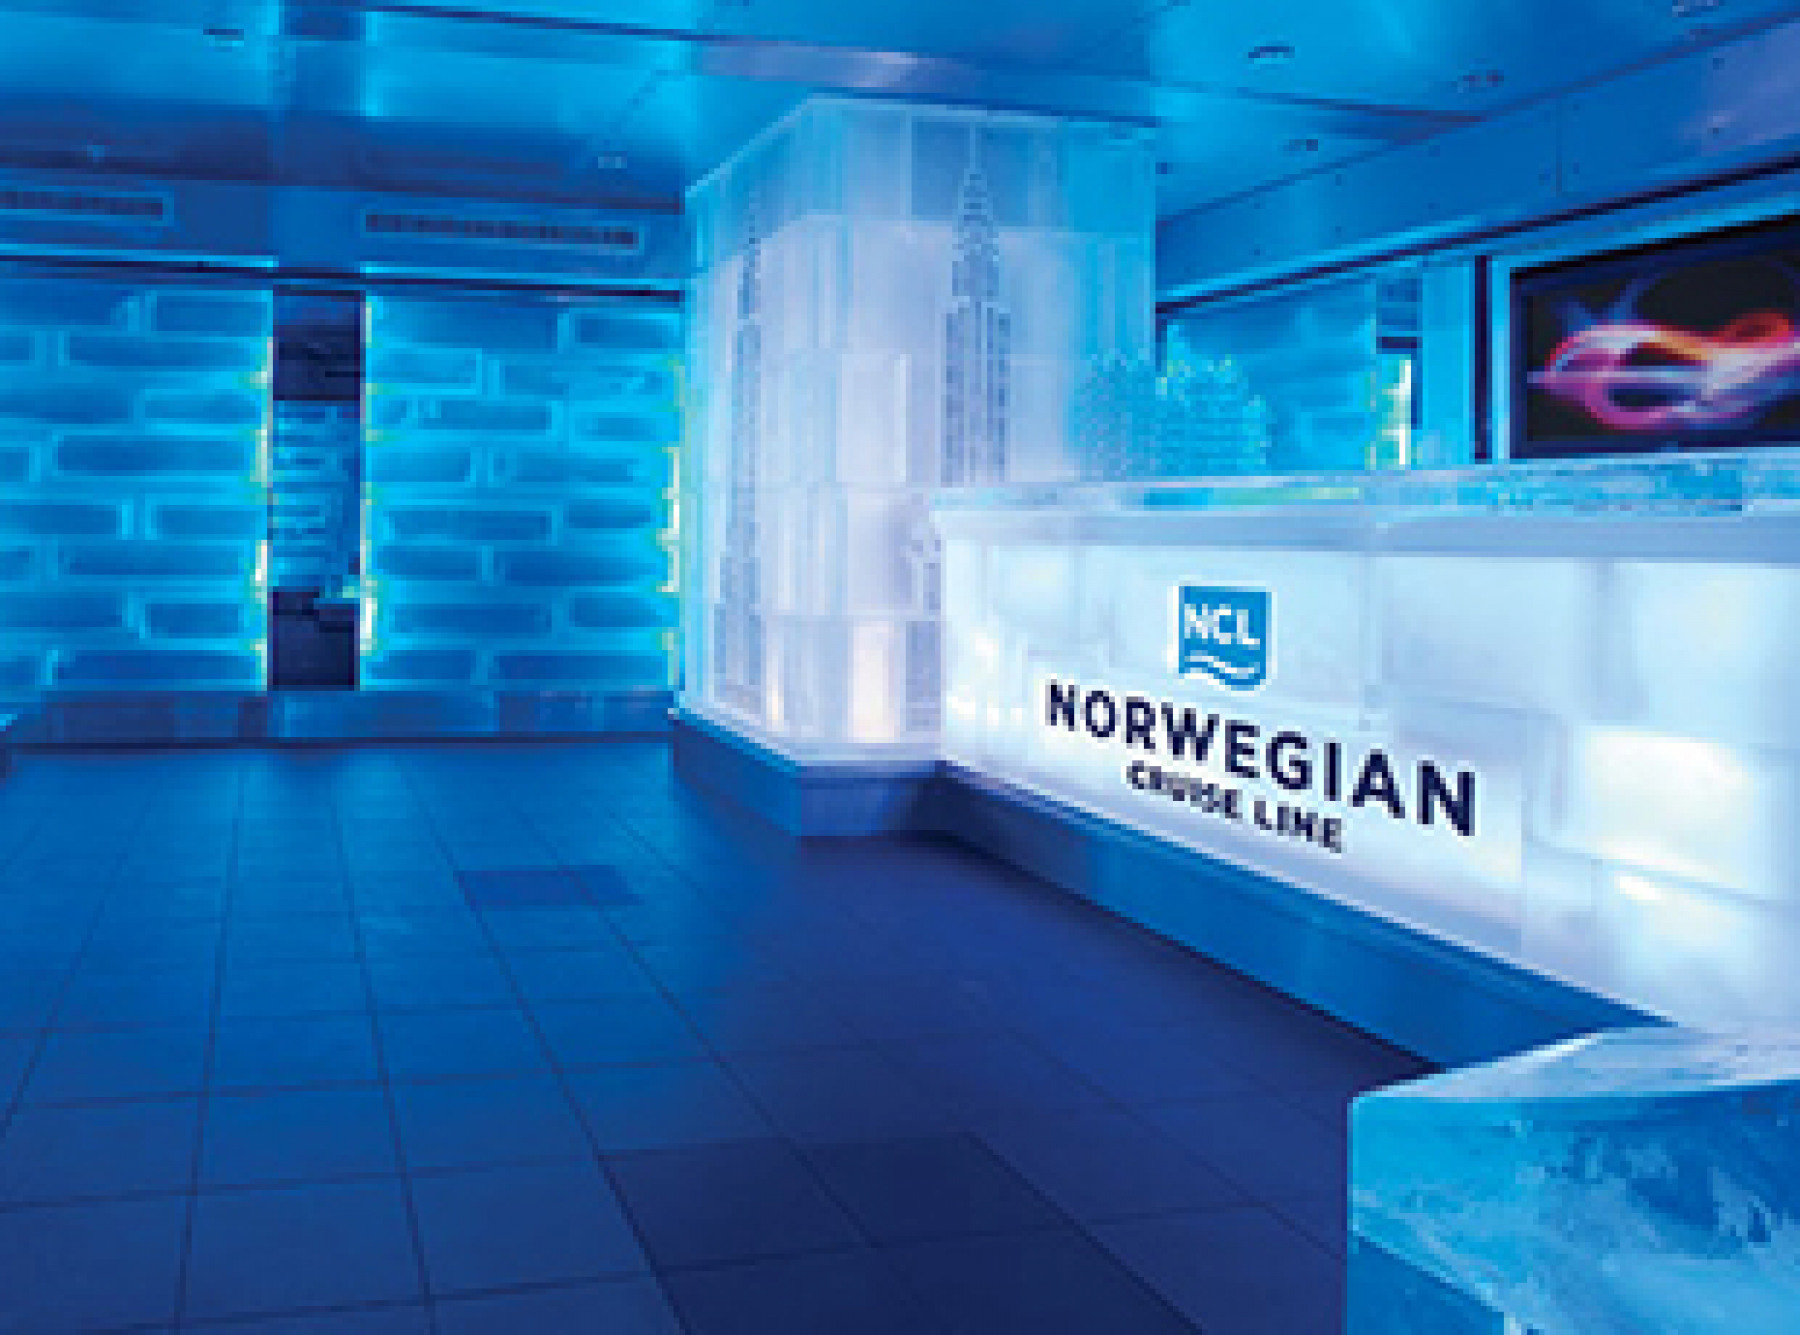 Norwegian Cruise Line Norwegian Breakaway Interior SVEDKA Ice Bar.jpg